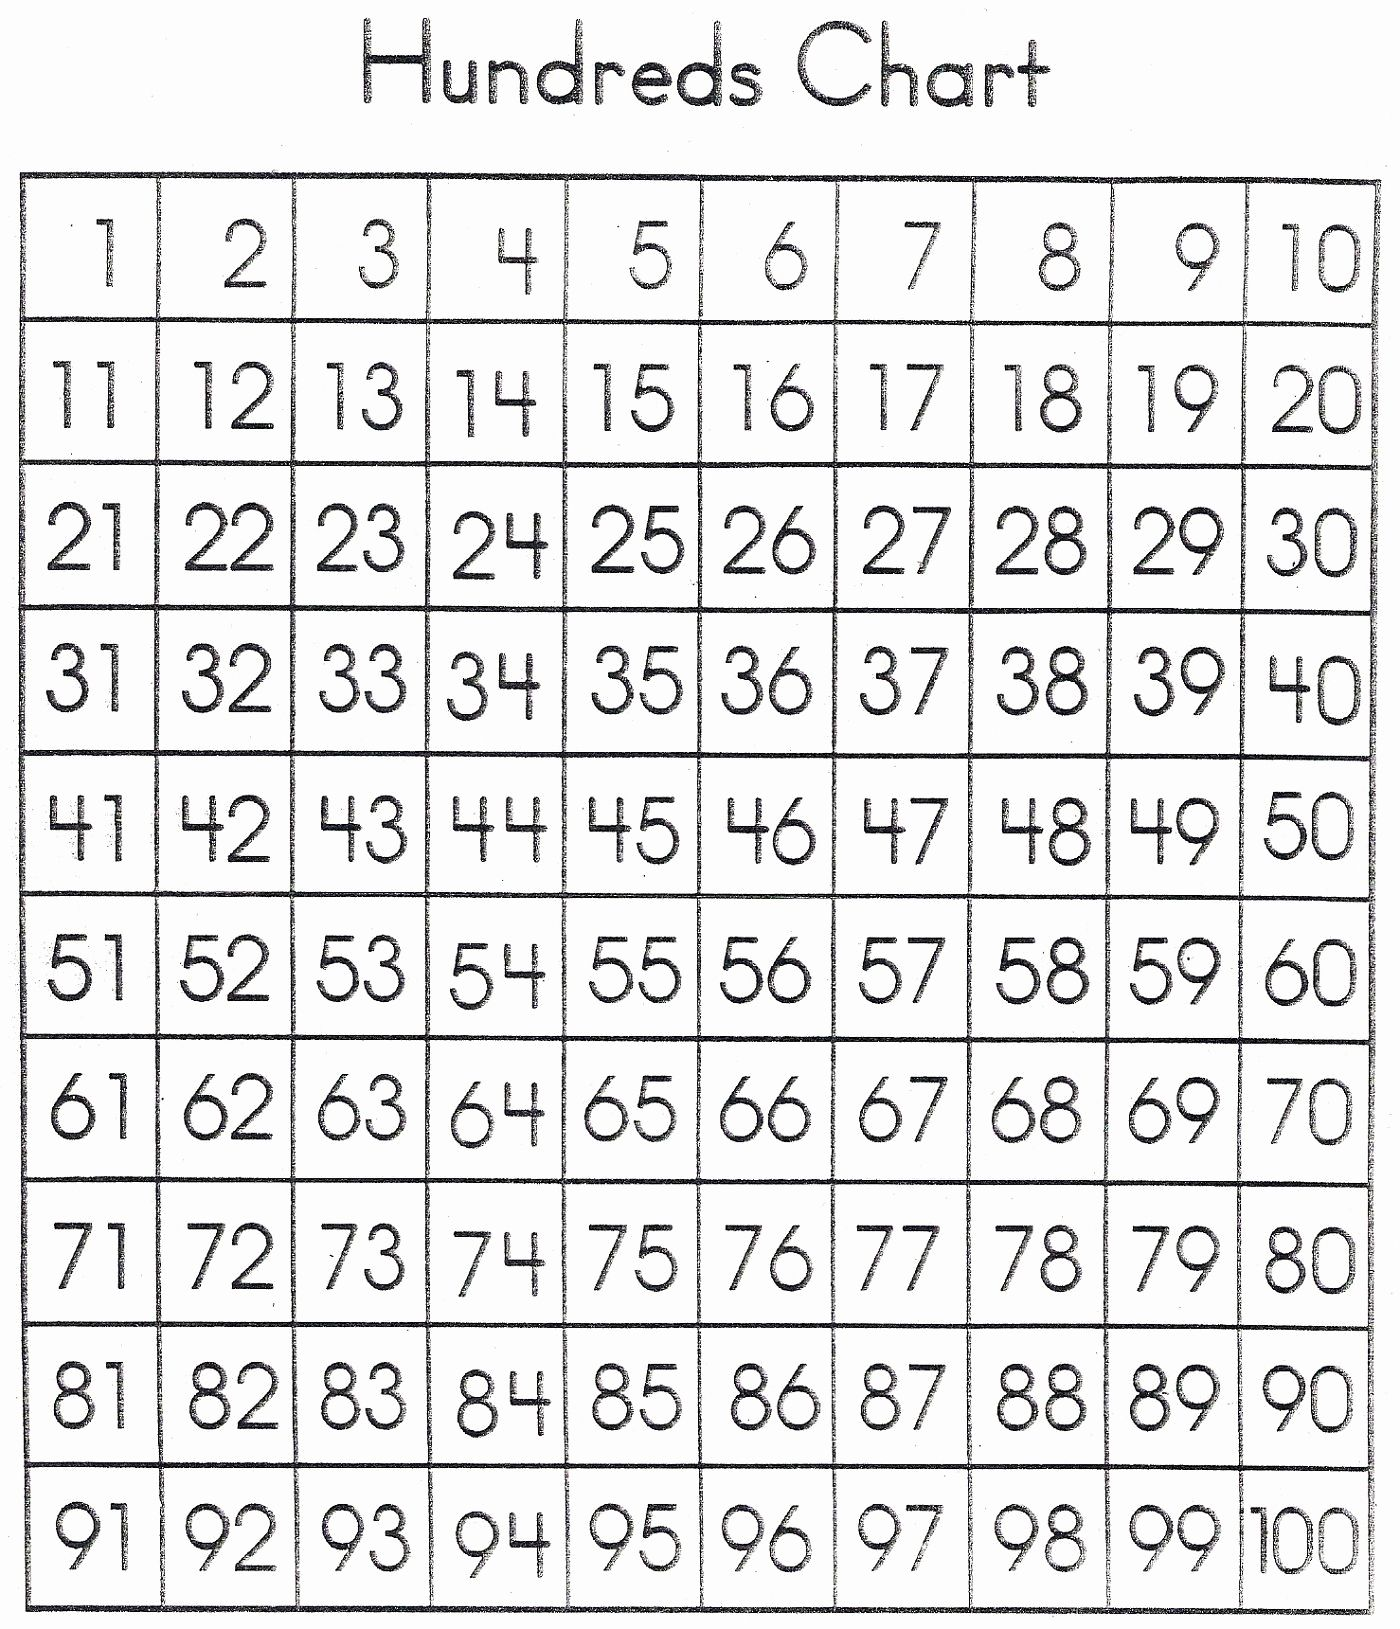 Printable Hundreds Chart In